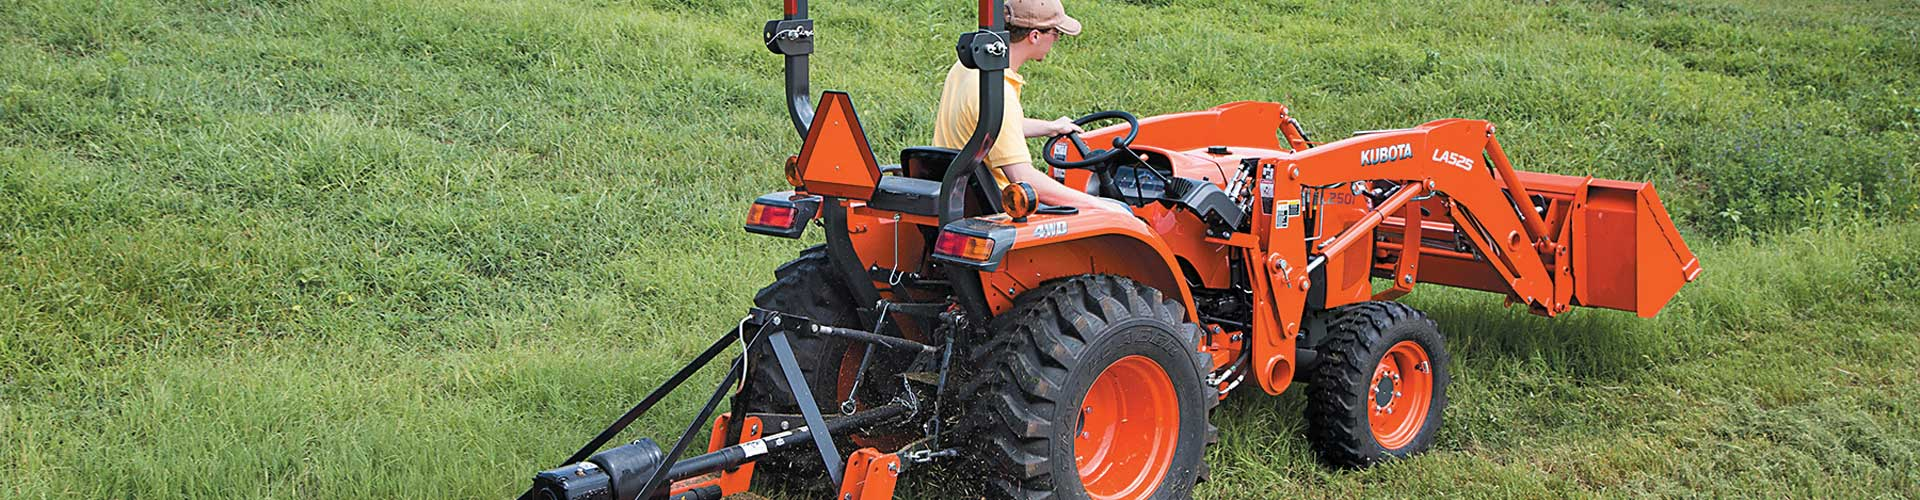 Finance Your New Kubota